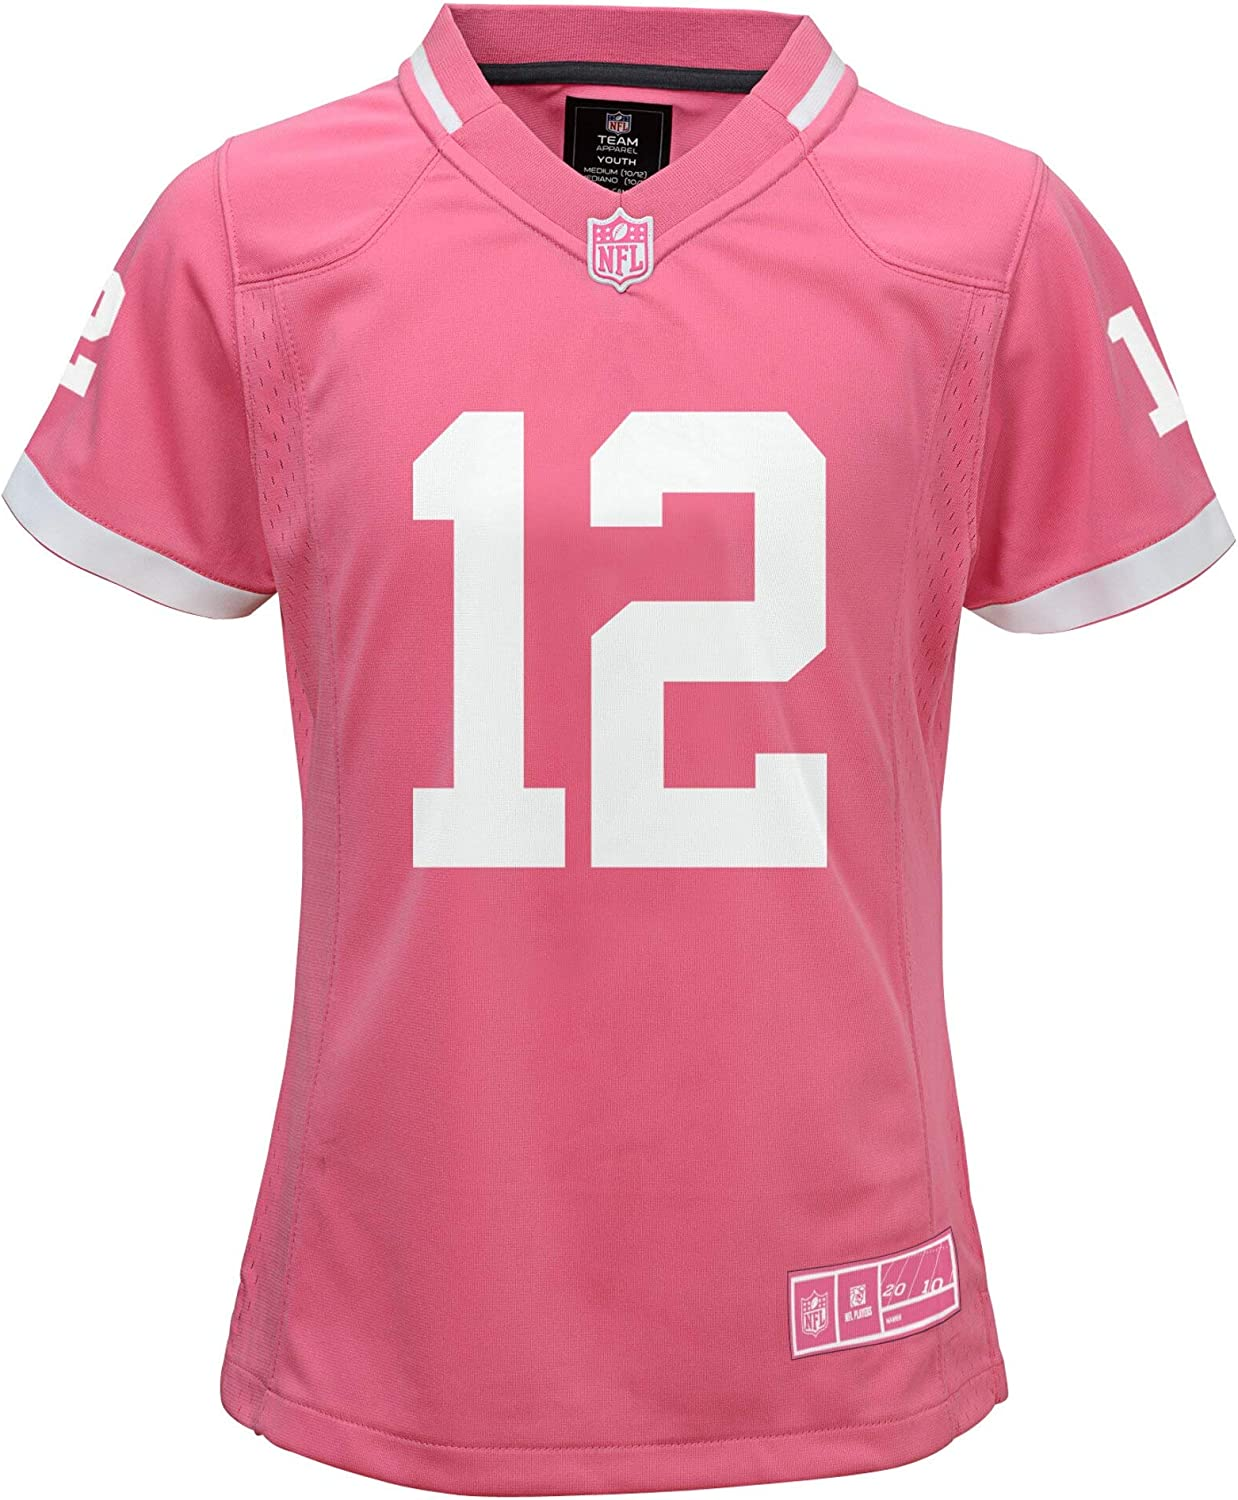 Aaron Rodgers Green Bay Packers #12 Bubble Gum Pink Youth Girls Jersey